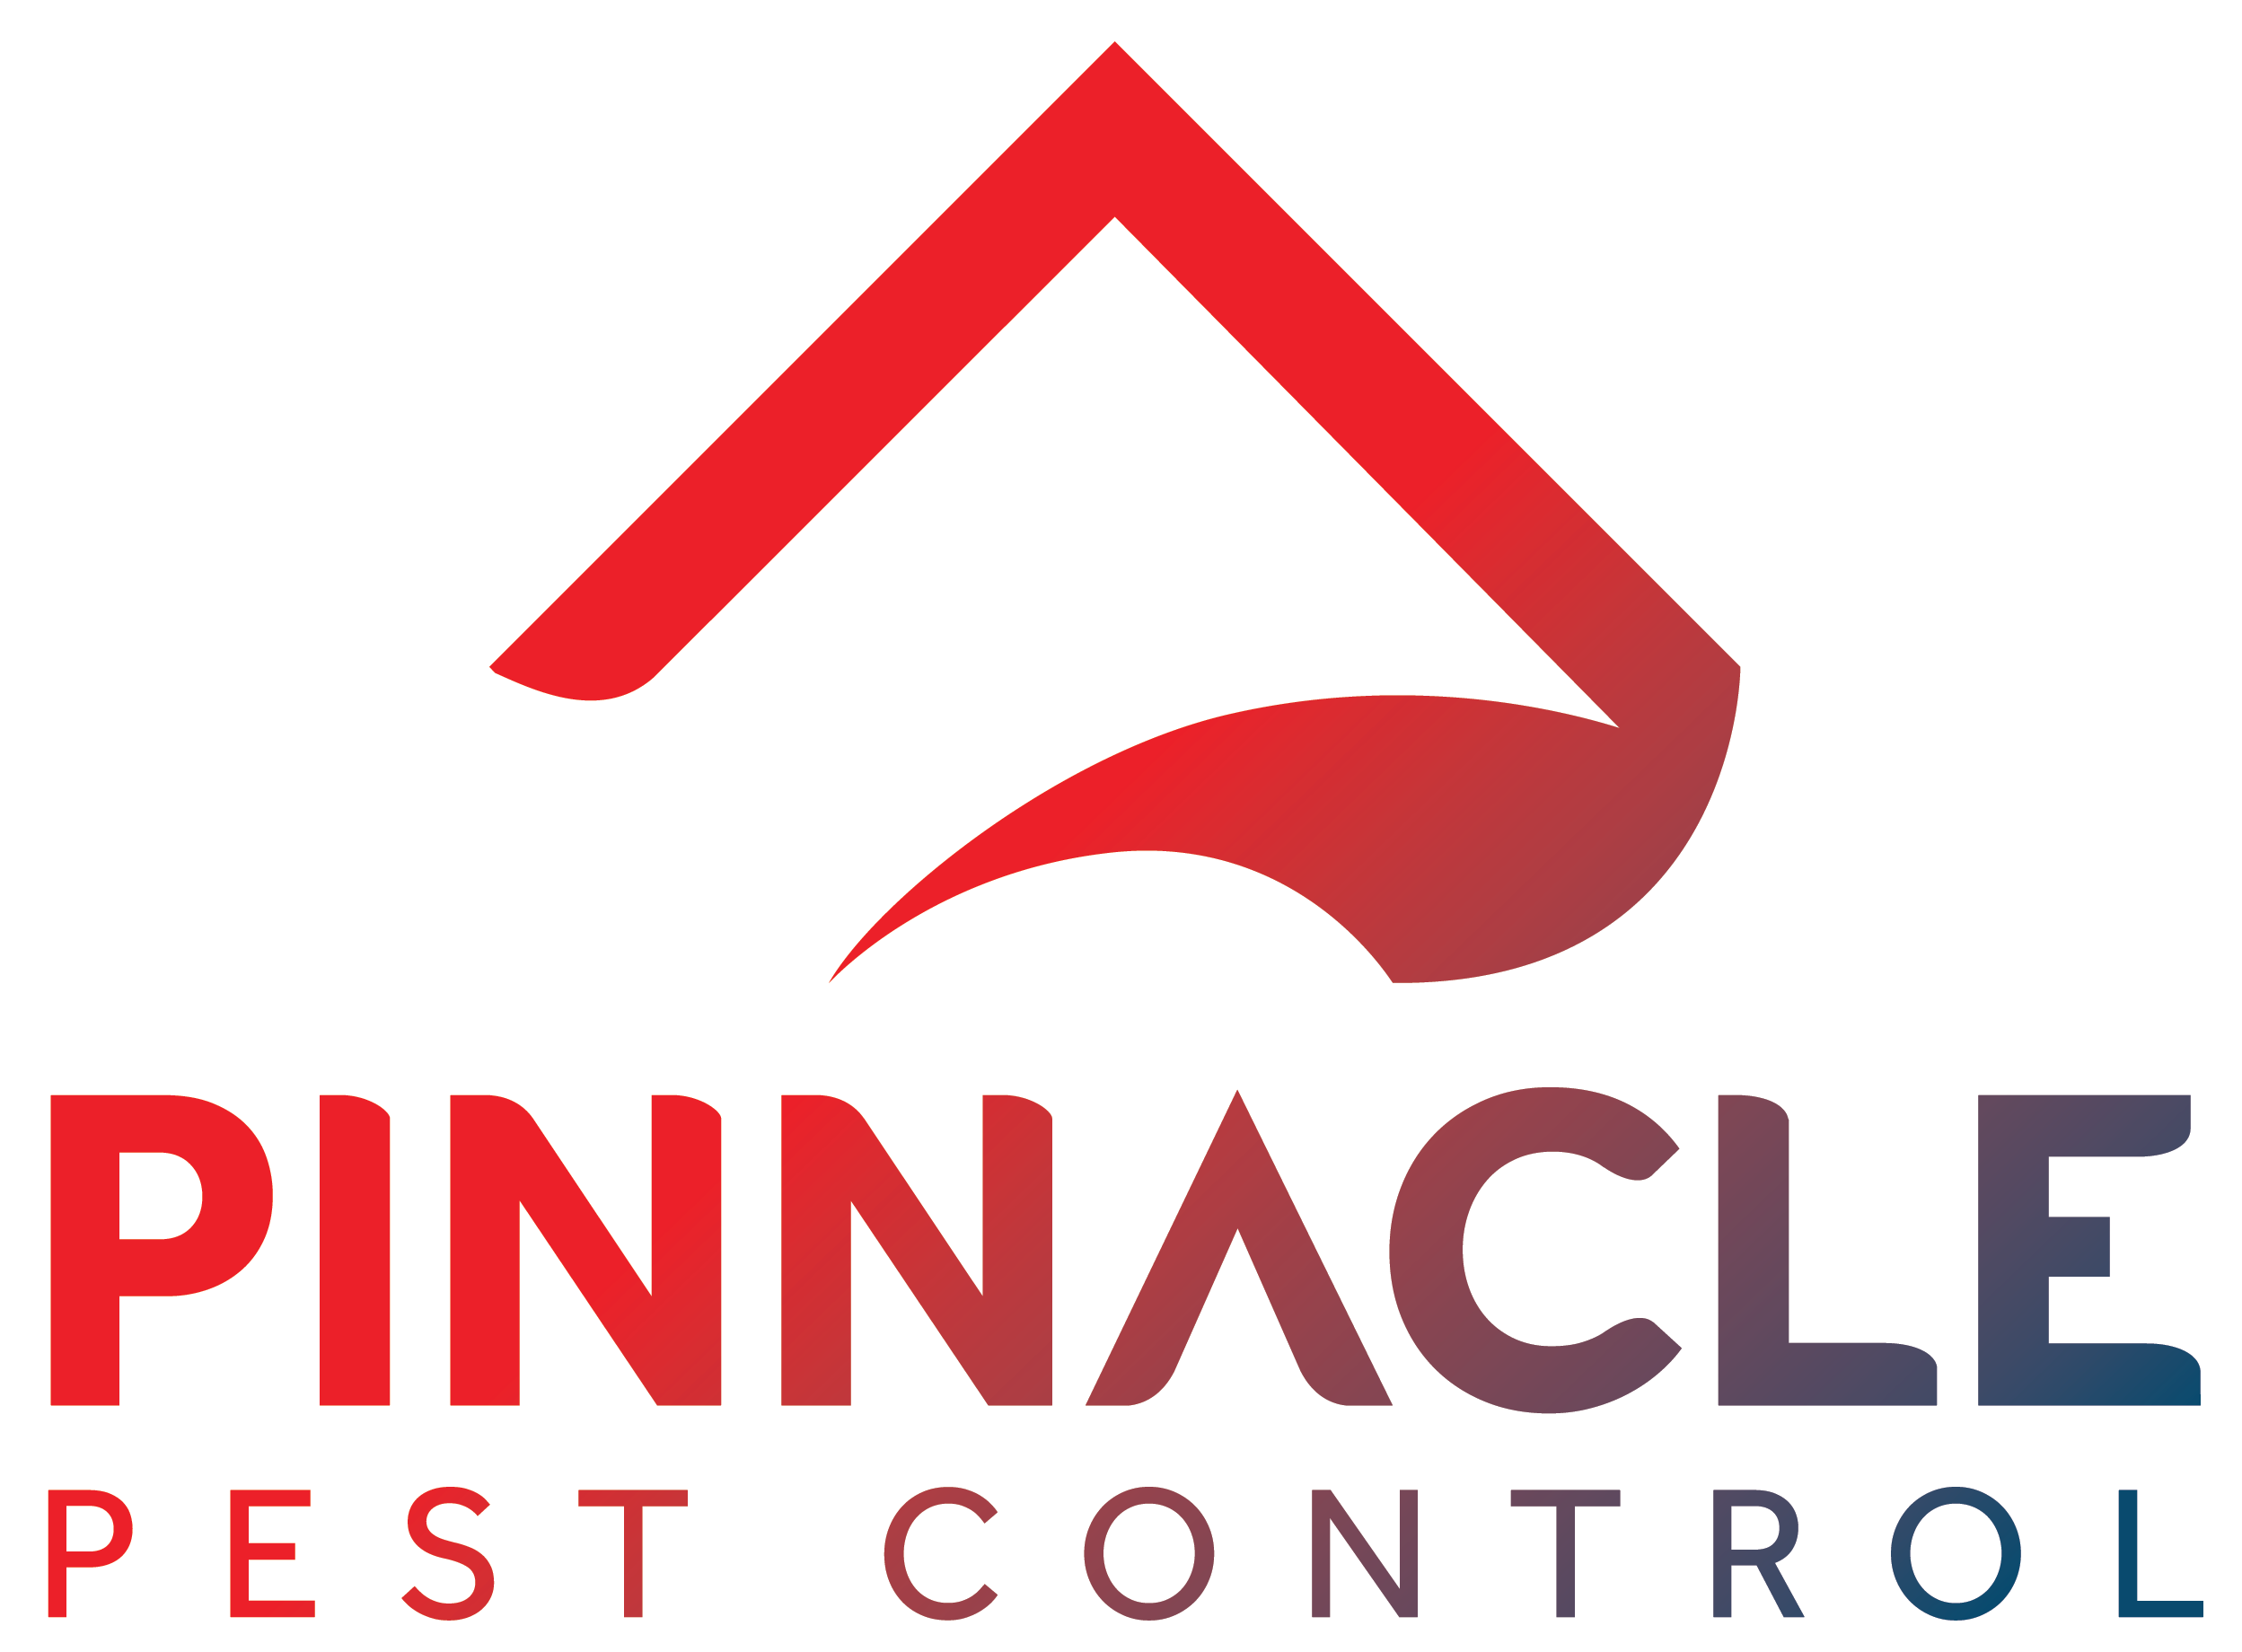 Pinnacle Pest Control